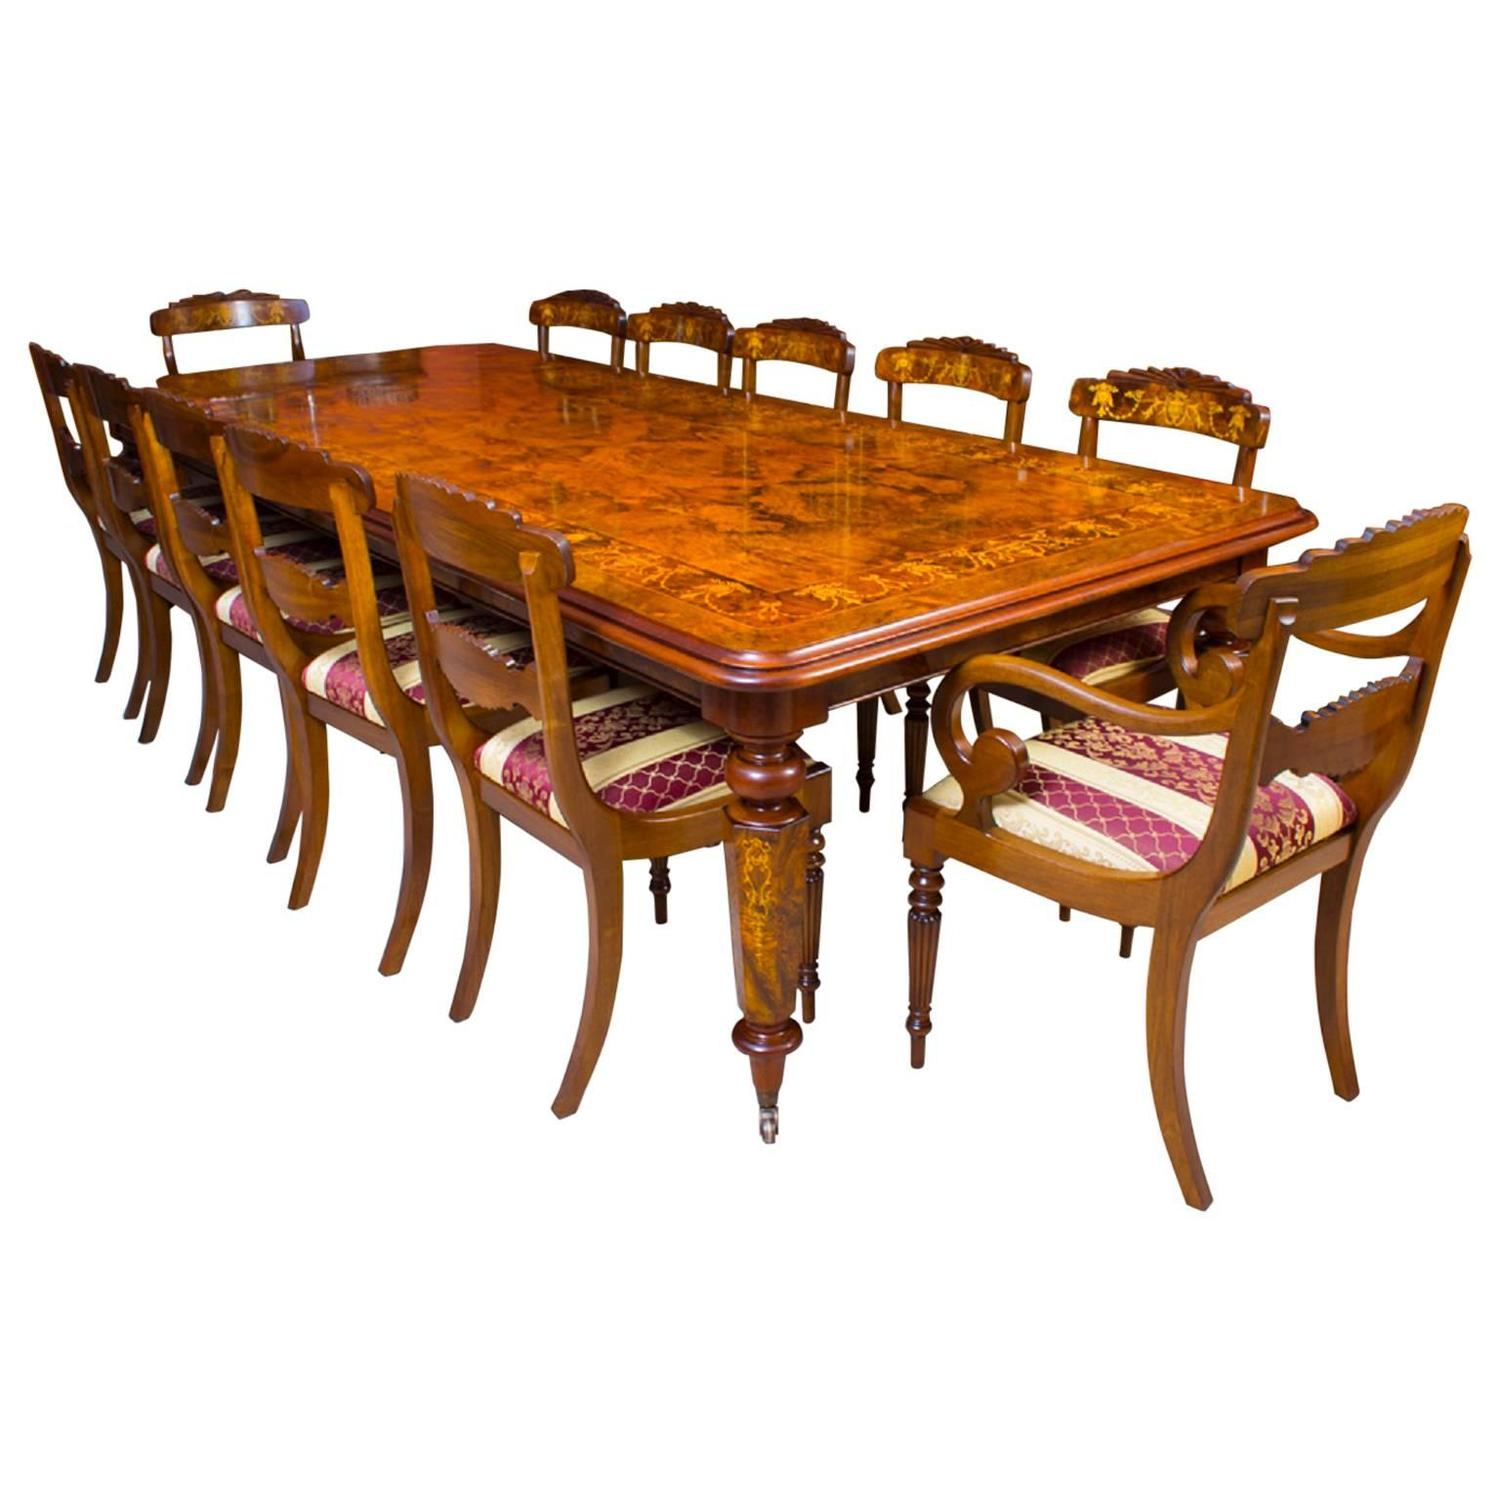 12 Chairs Victorian Style Marquetry Dining Table And 12 Chairs For